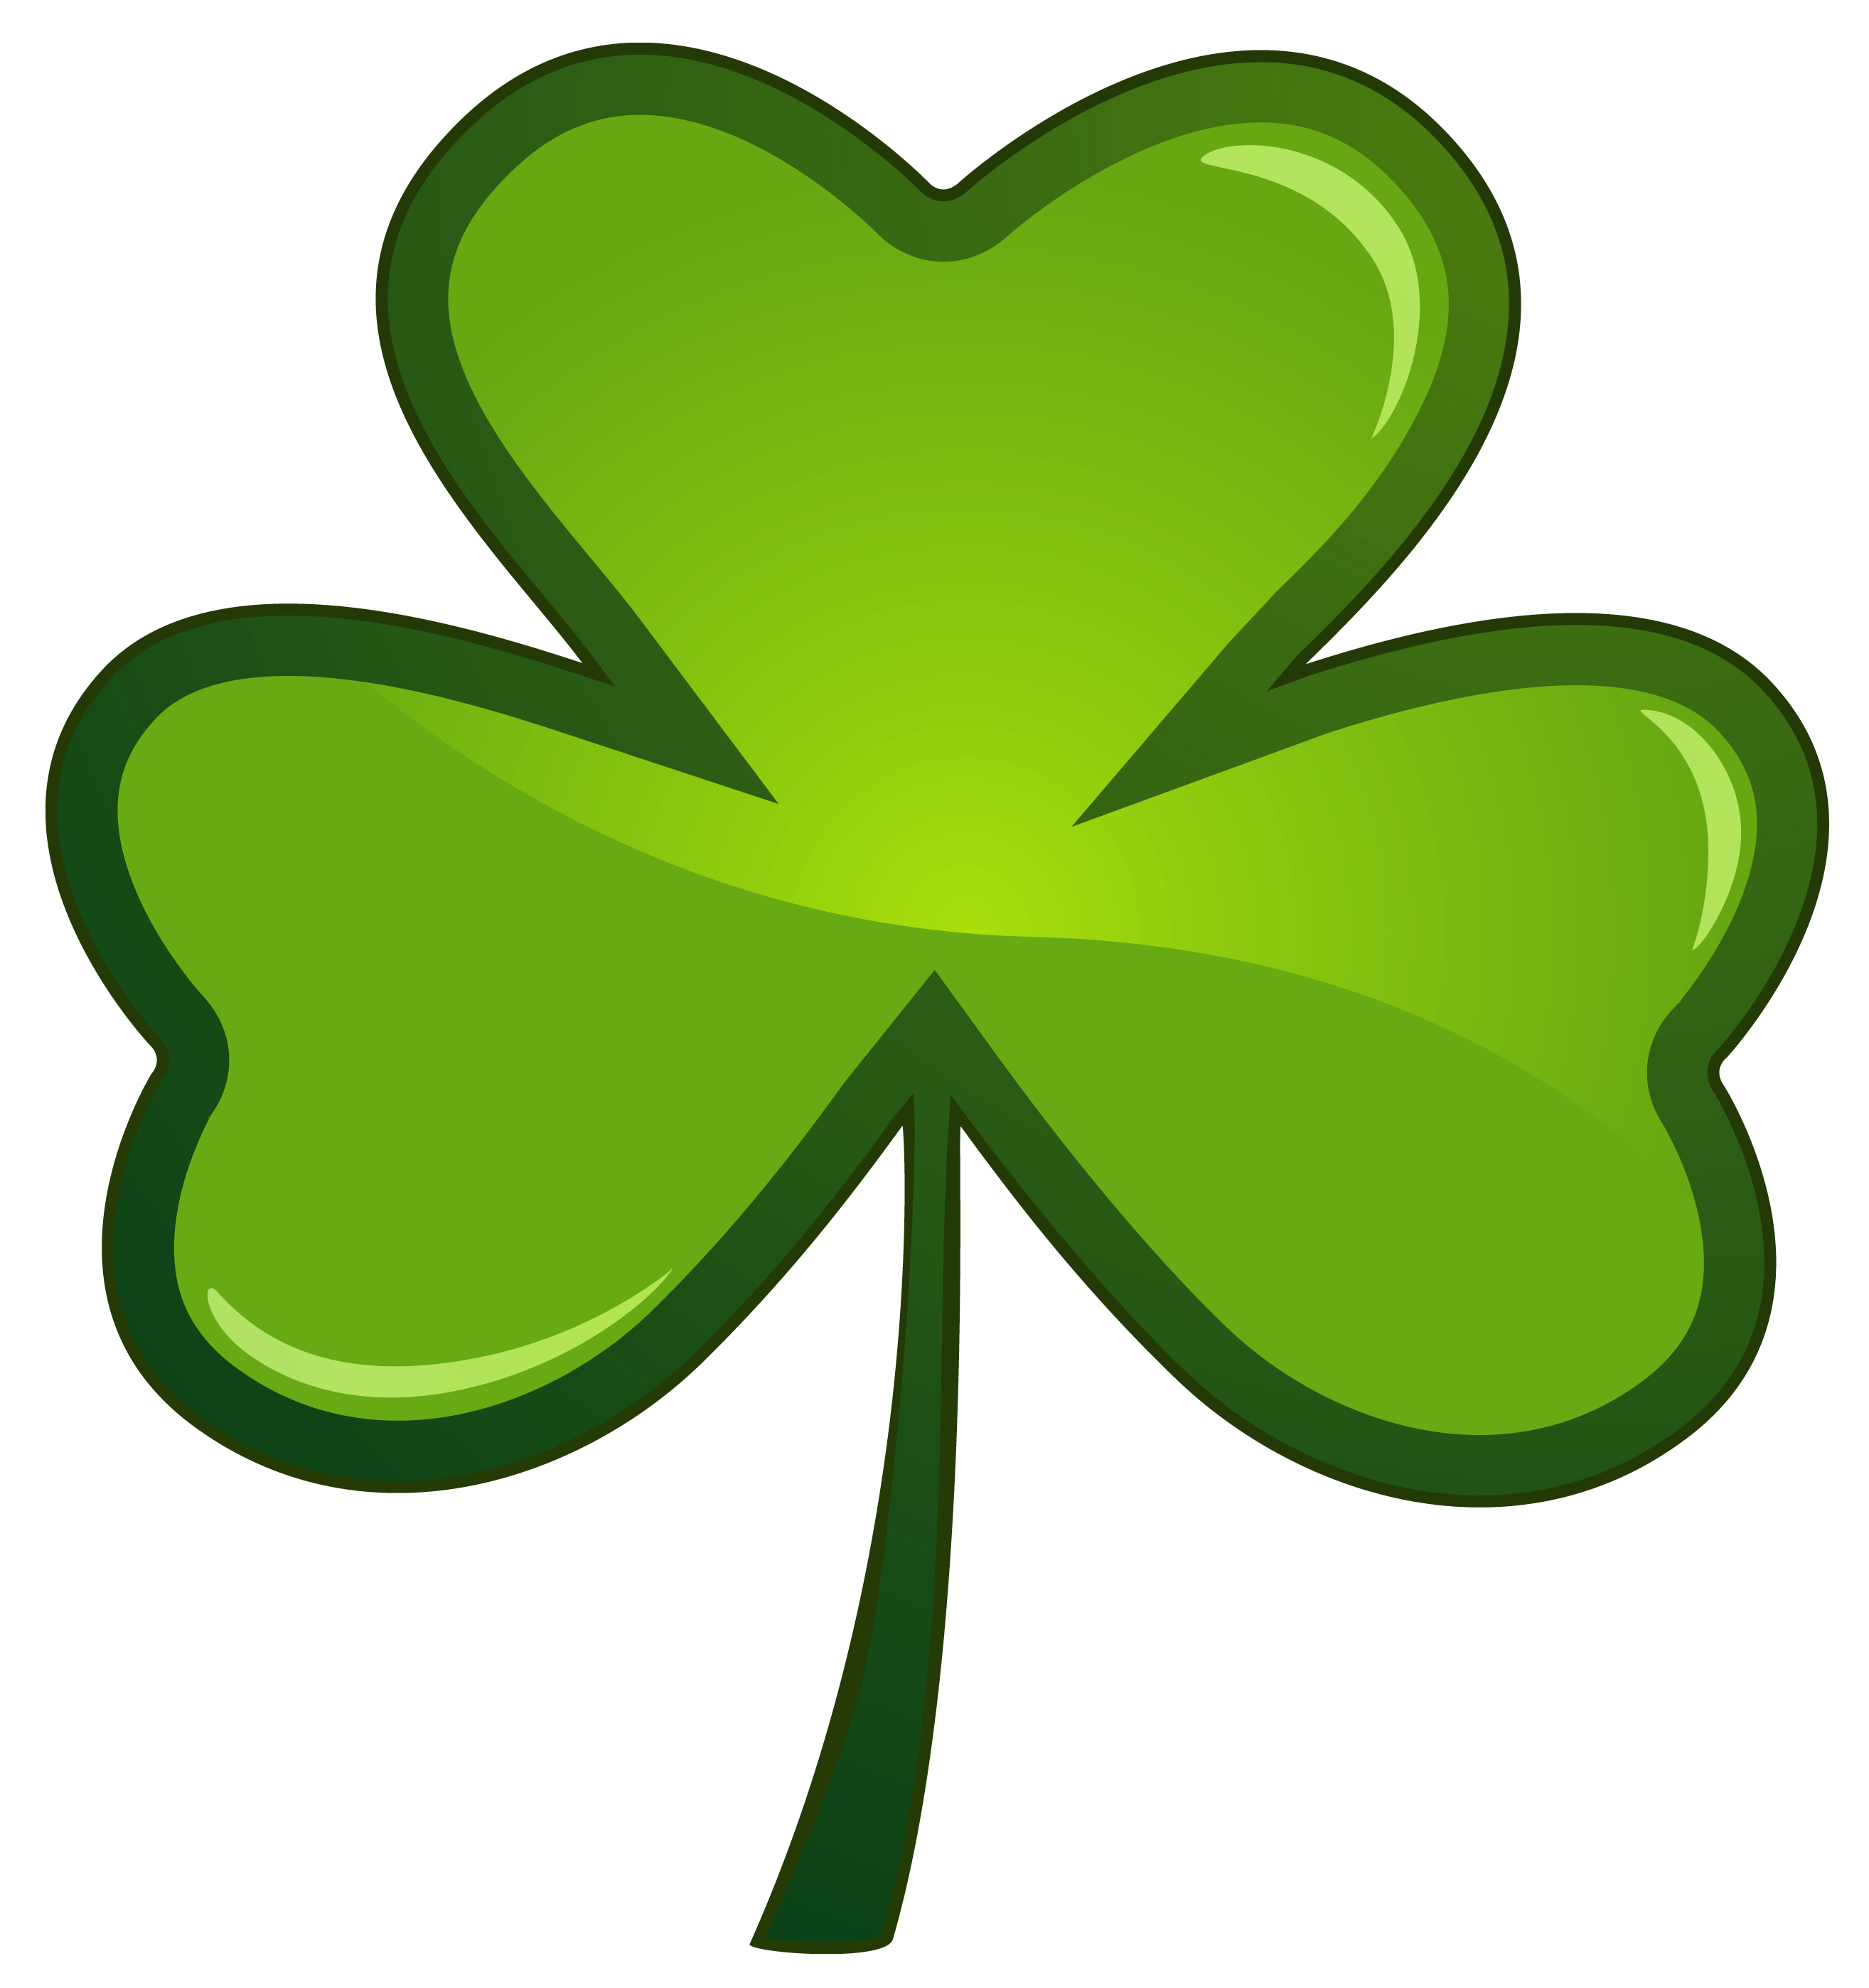 Saint Patricks Day Clip Art Cliparts Co-Saint Patricks Day Clip Art Cliparts Co-4